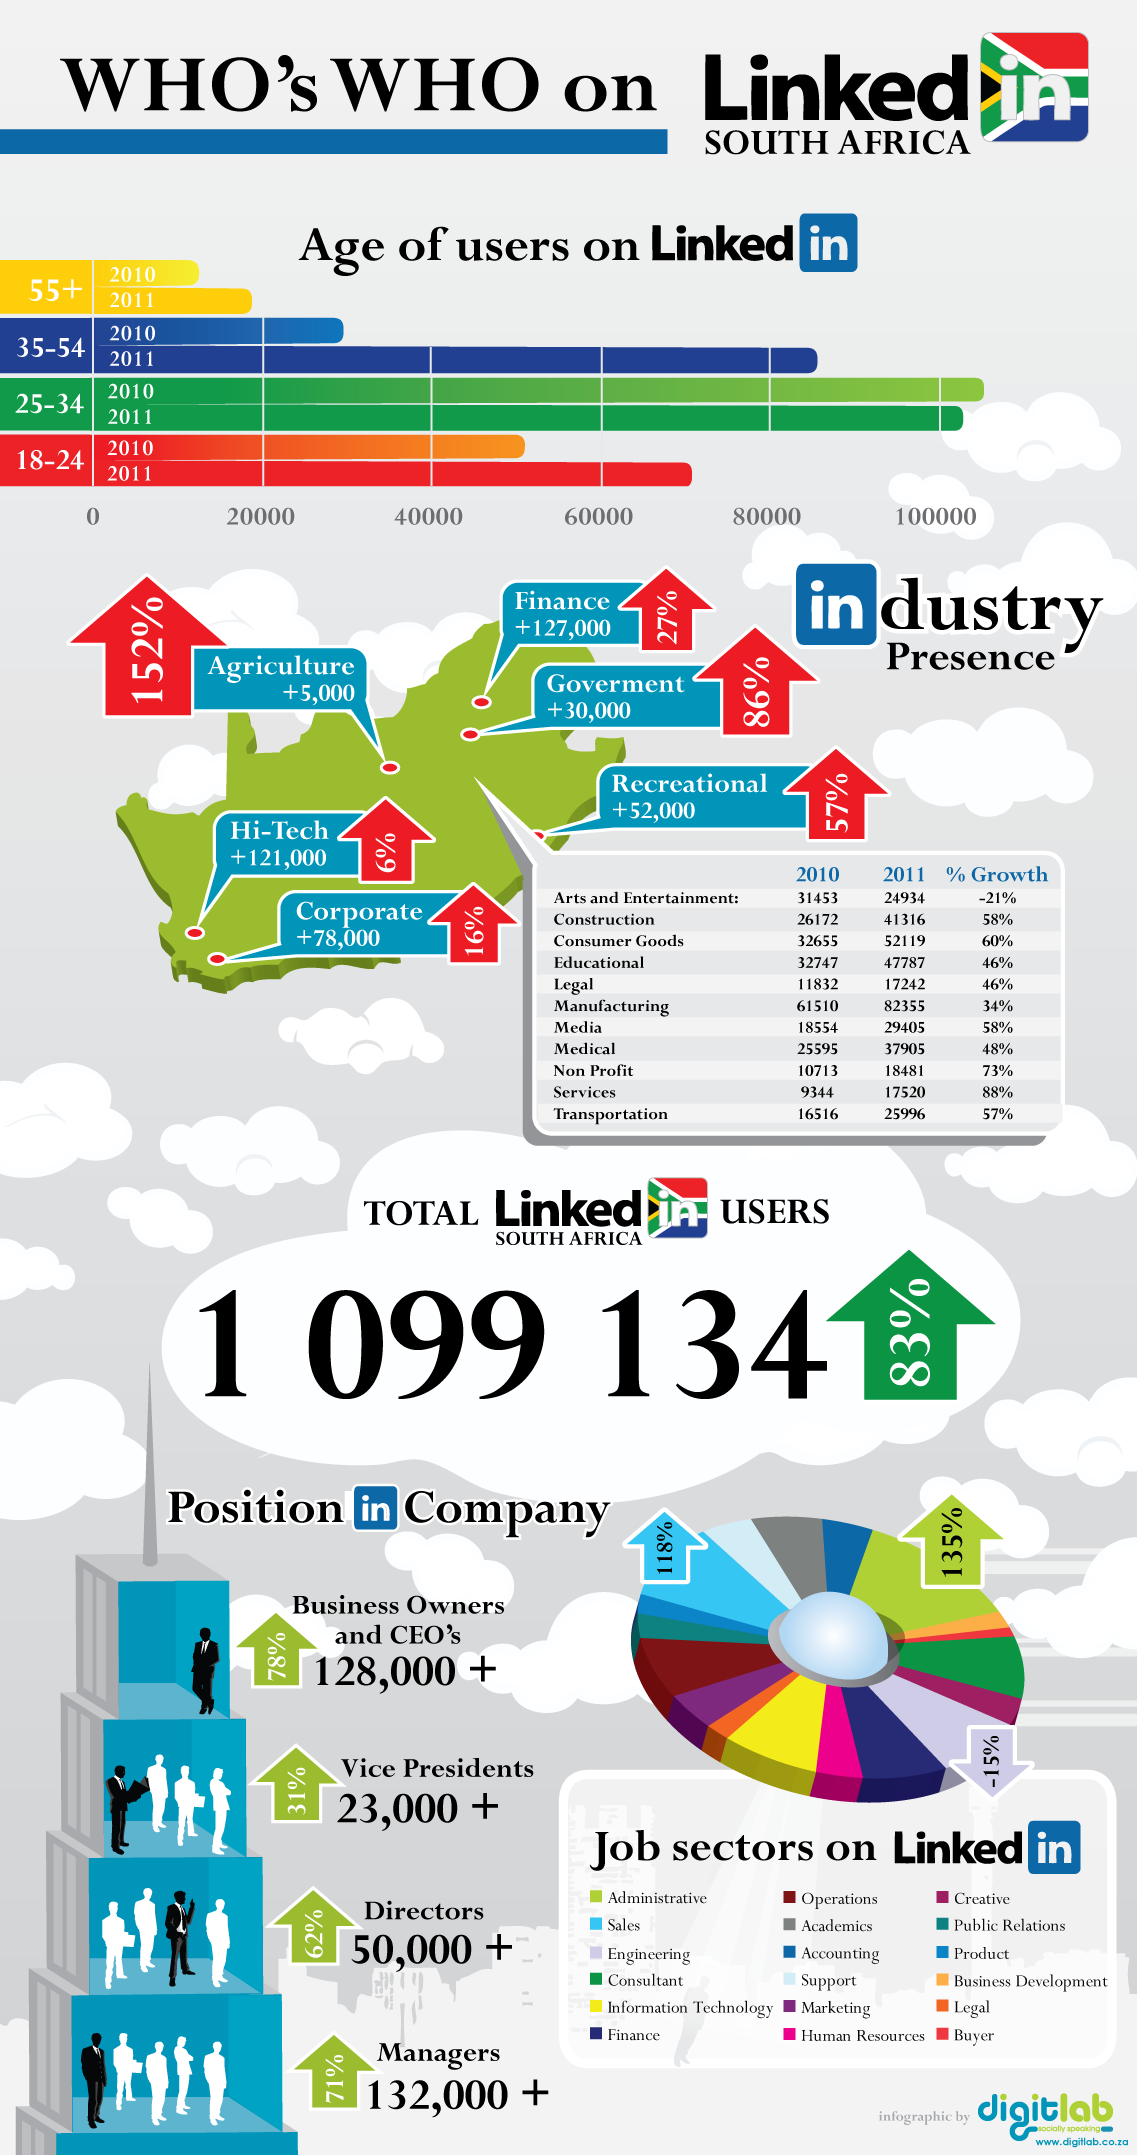 Fastest Growing Industries in South Africa (According to